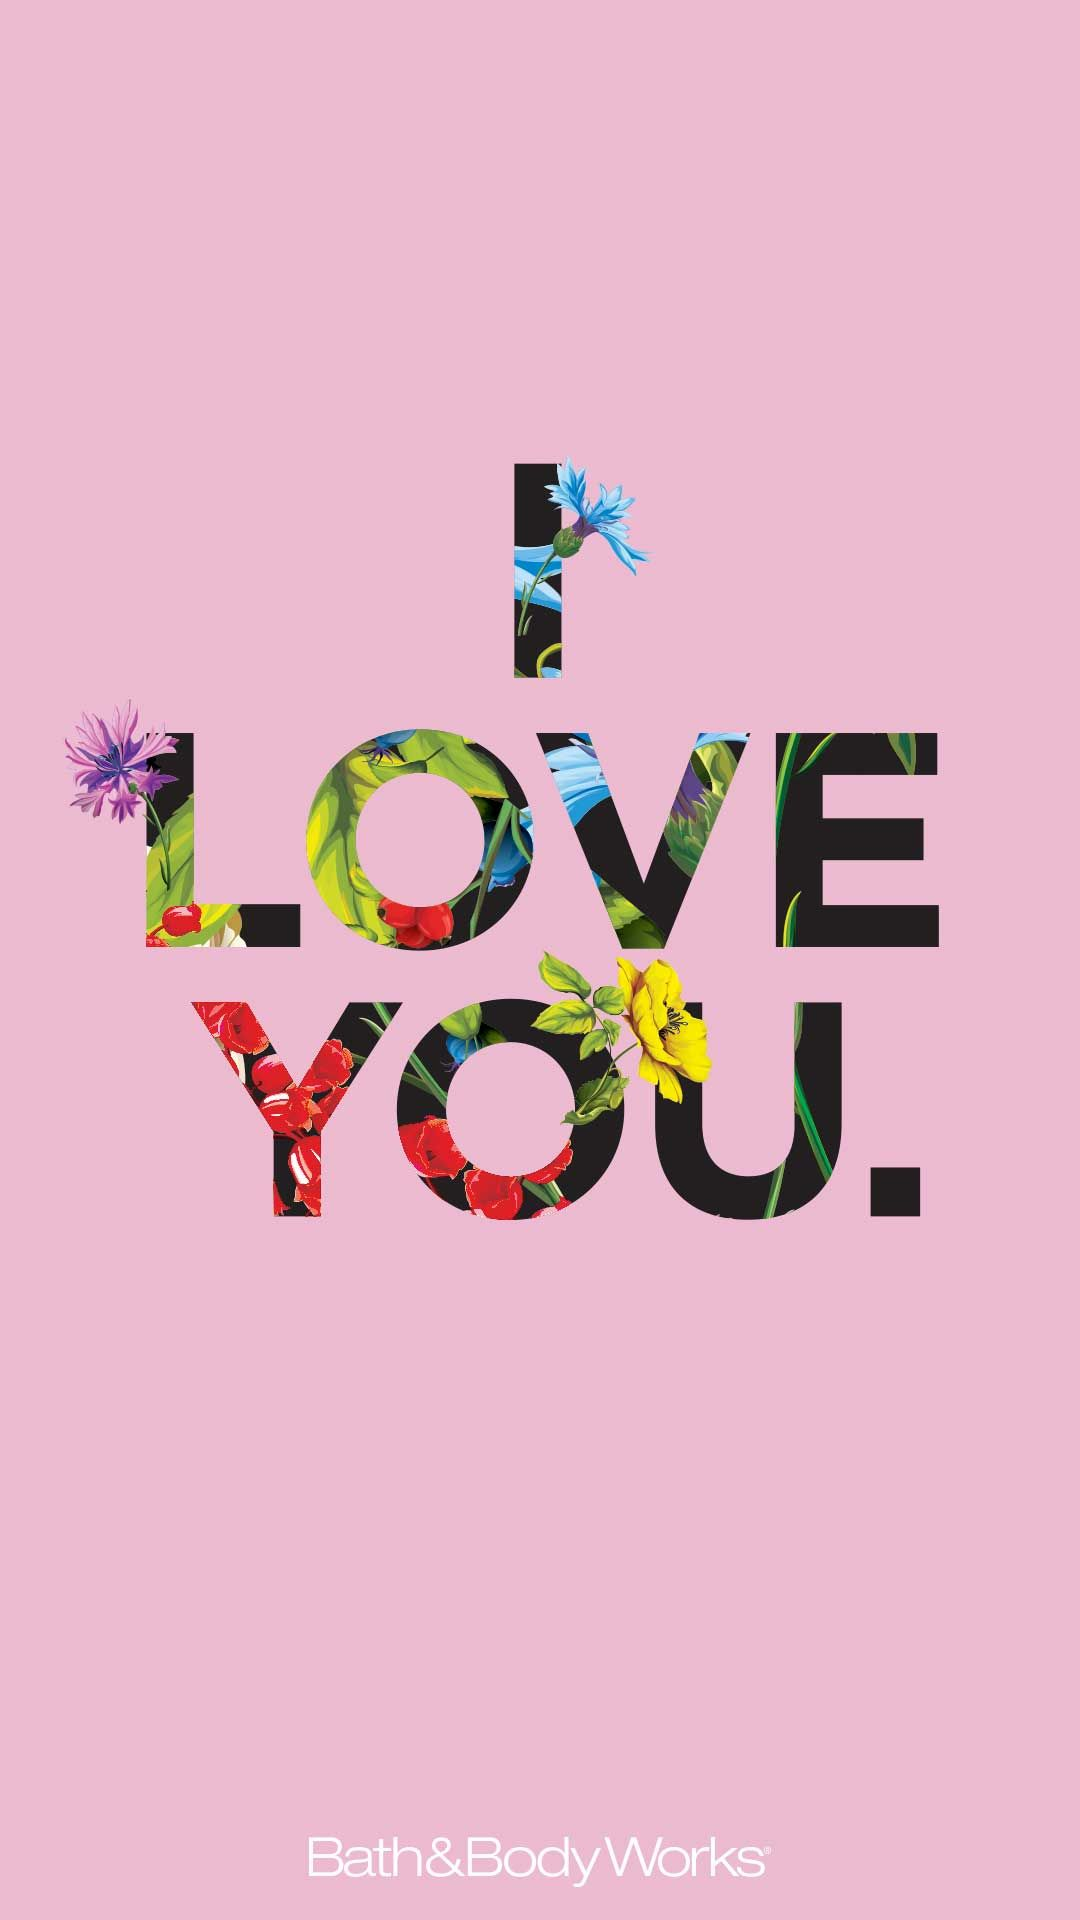 I Love You Iphone Wallpaper - Graphic Design , HD Wallpaper & Backgrounds